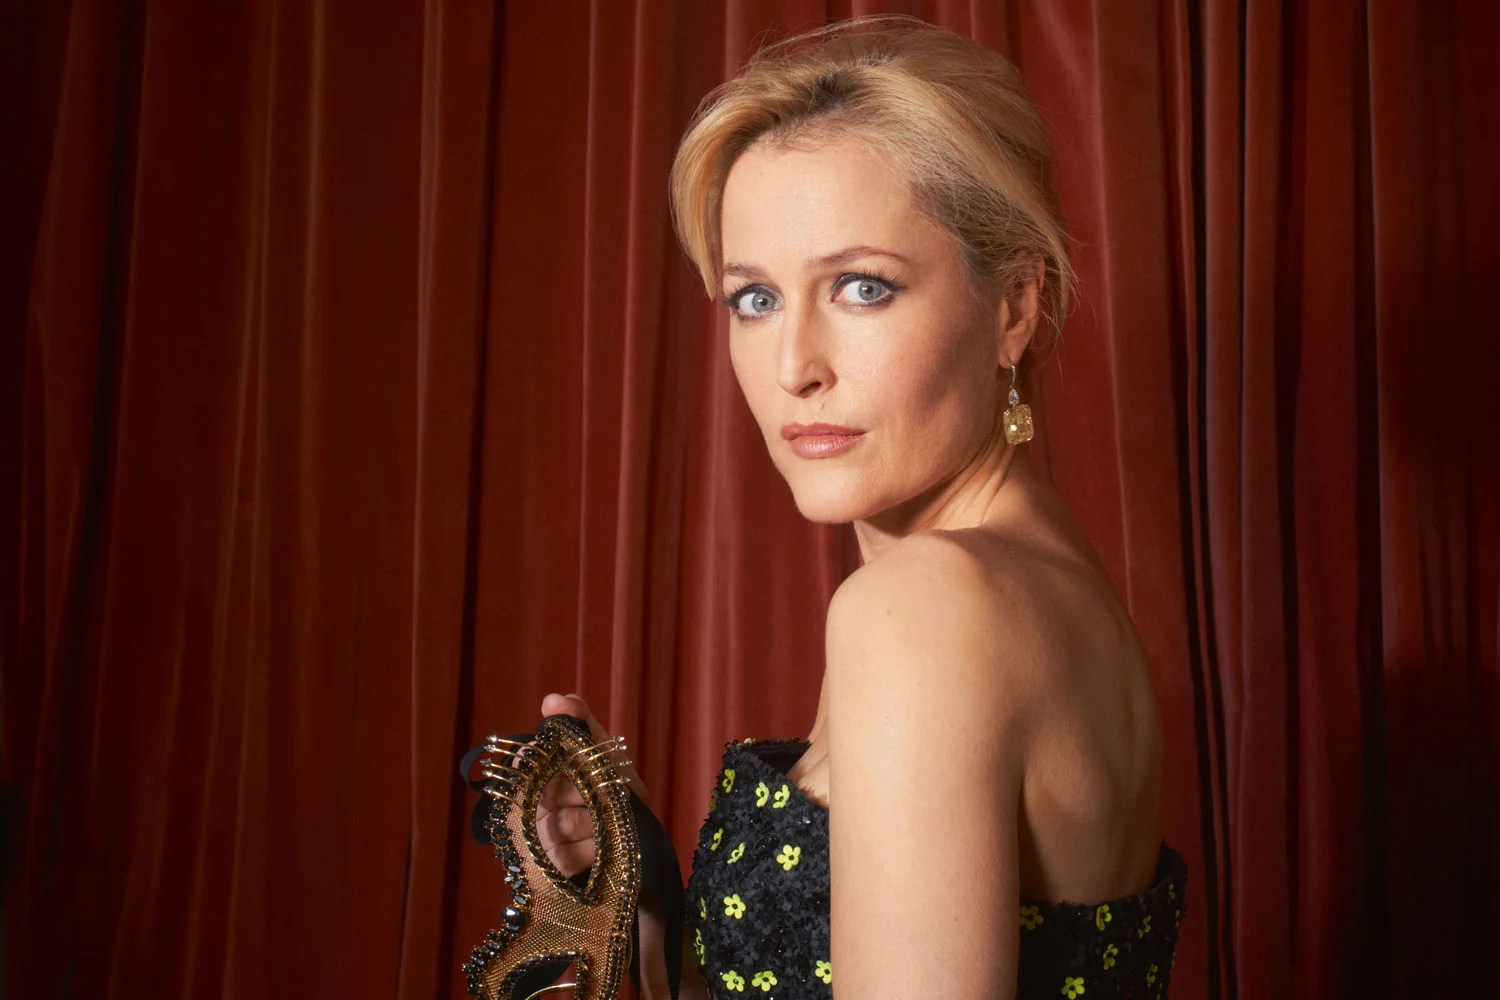 Fall Wallpaper With Dogs The Importance Of Being Gillian Anderson London Evening